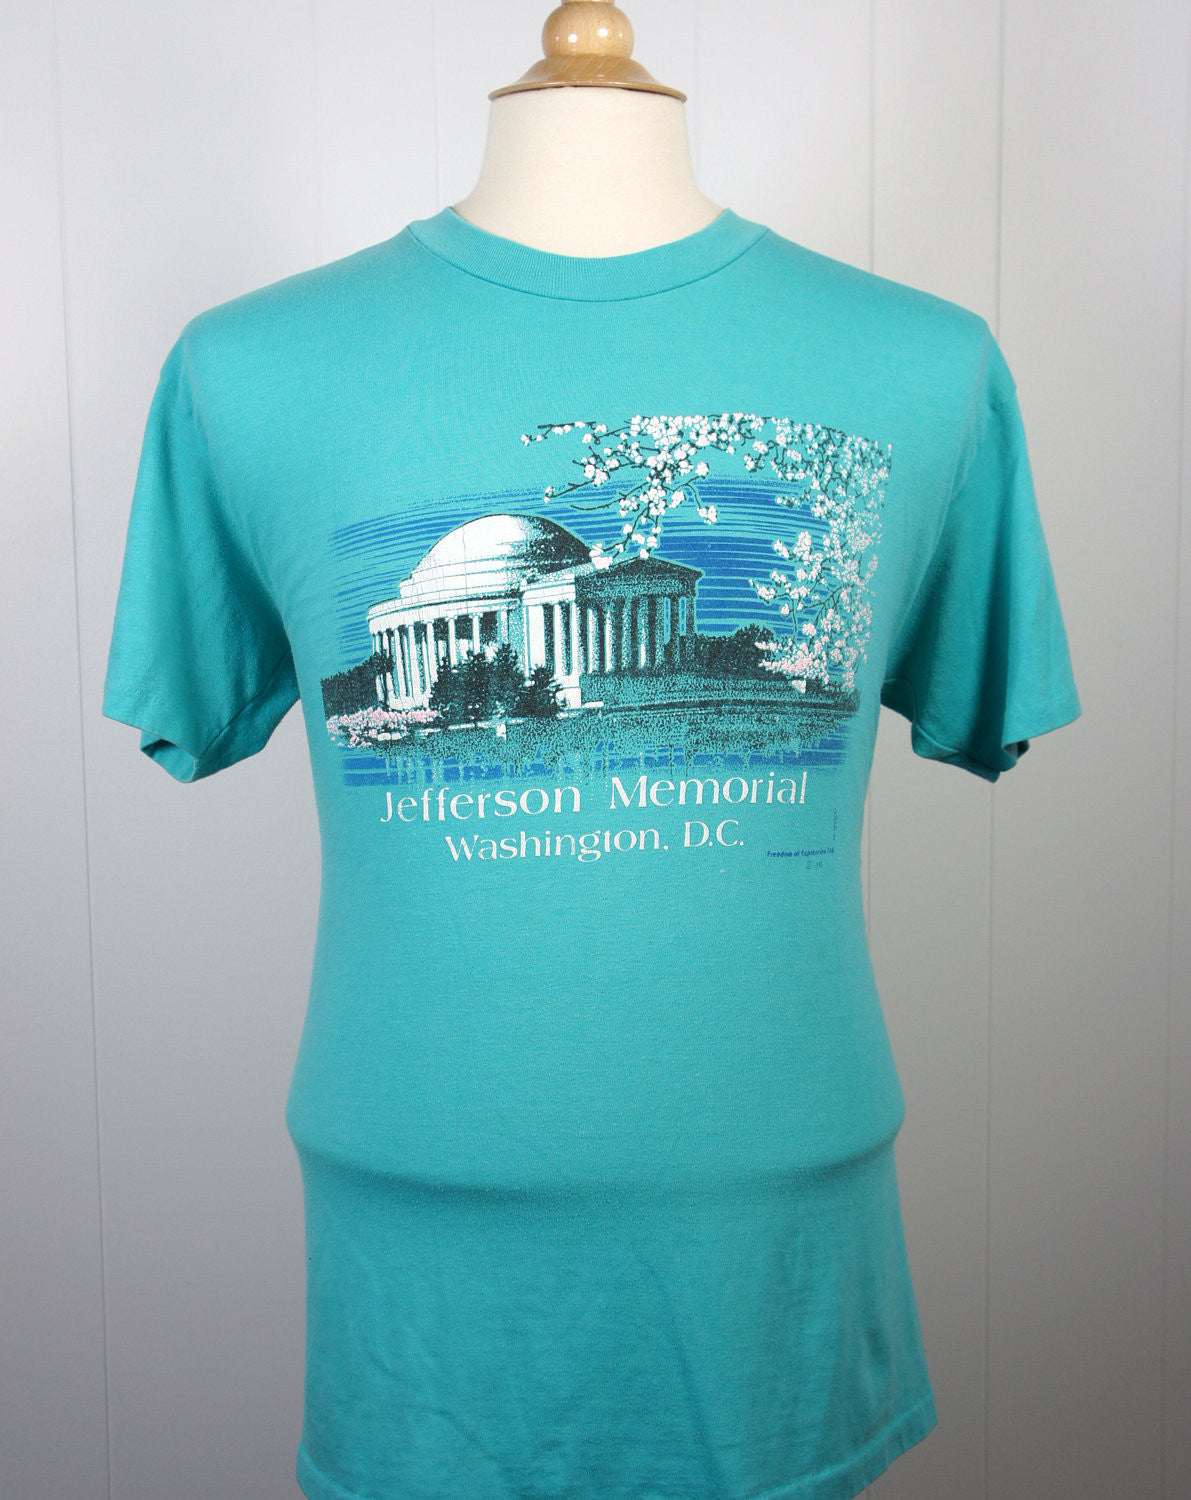 1980's Washington D.C. Monument T-Shirt - Size L